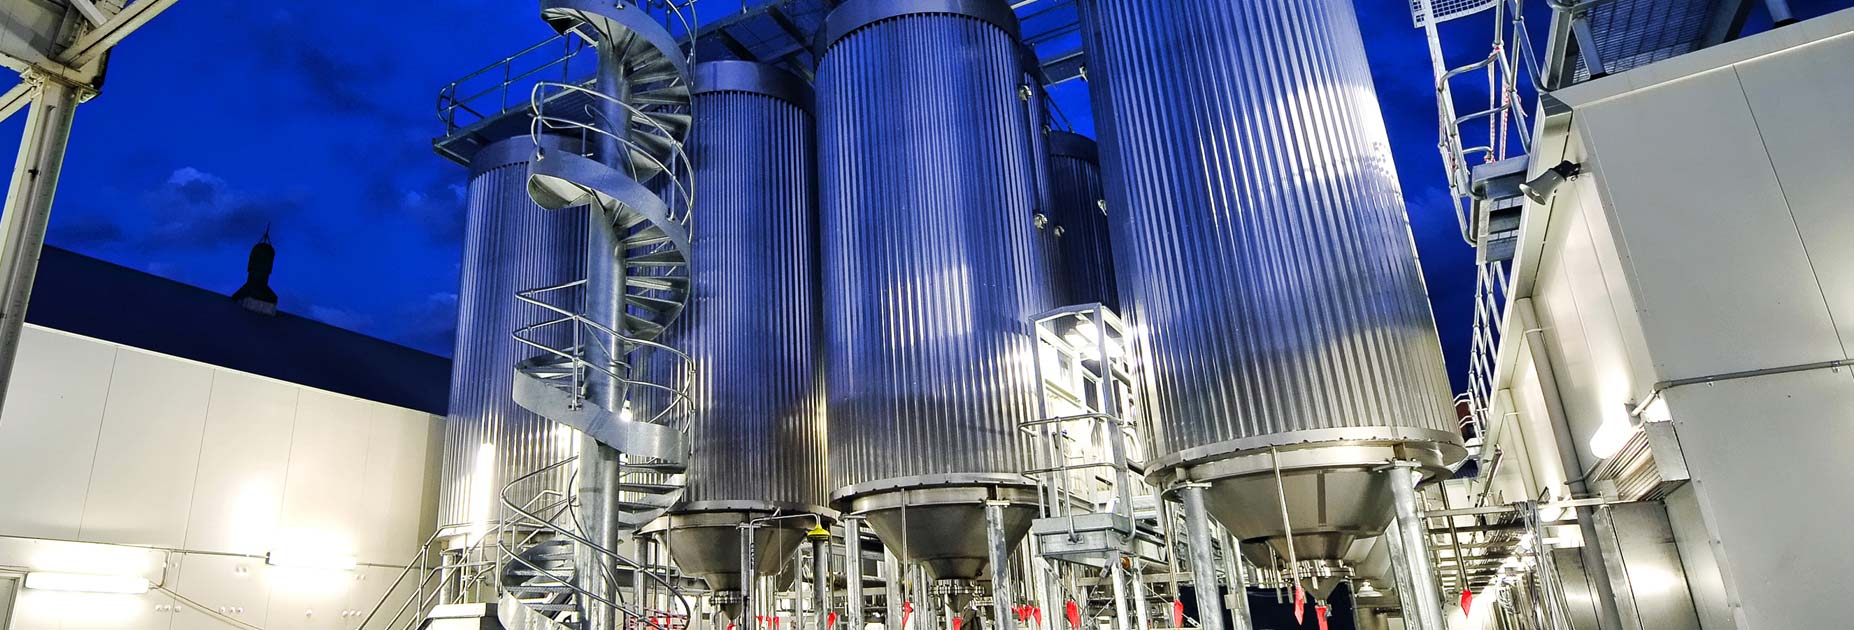 stainless steel tank, stainless steel pressure vessels, engineering, mixing tanks,